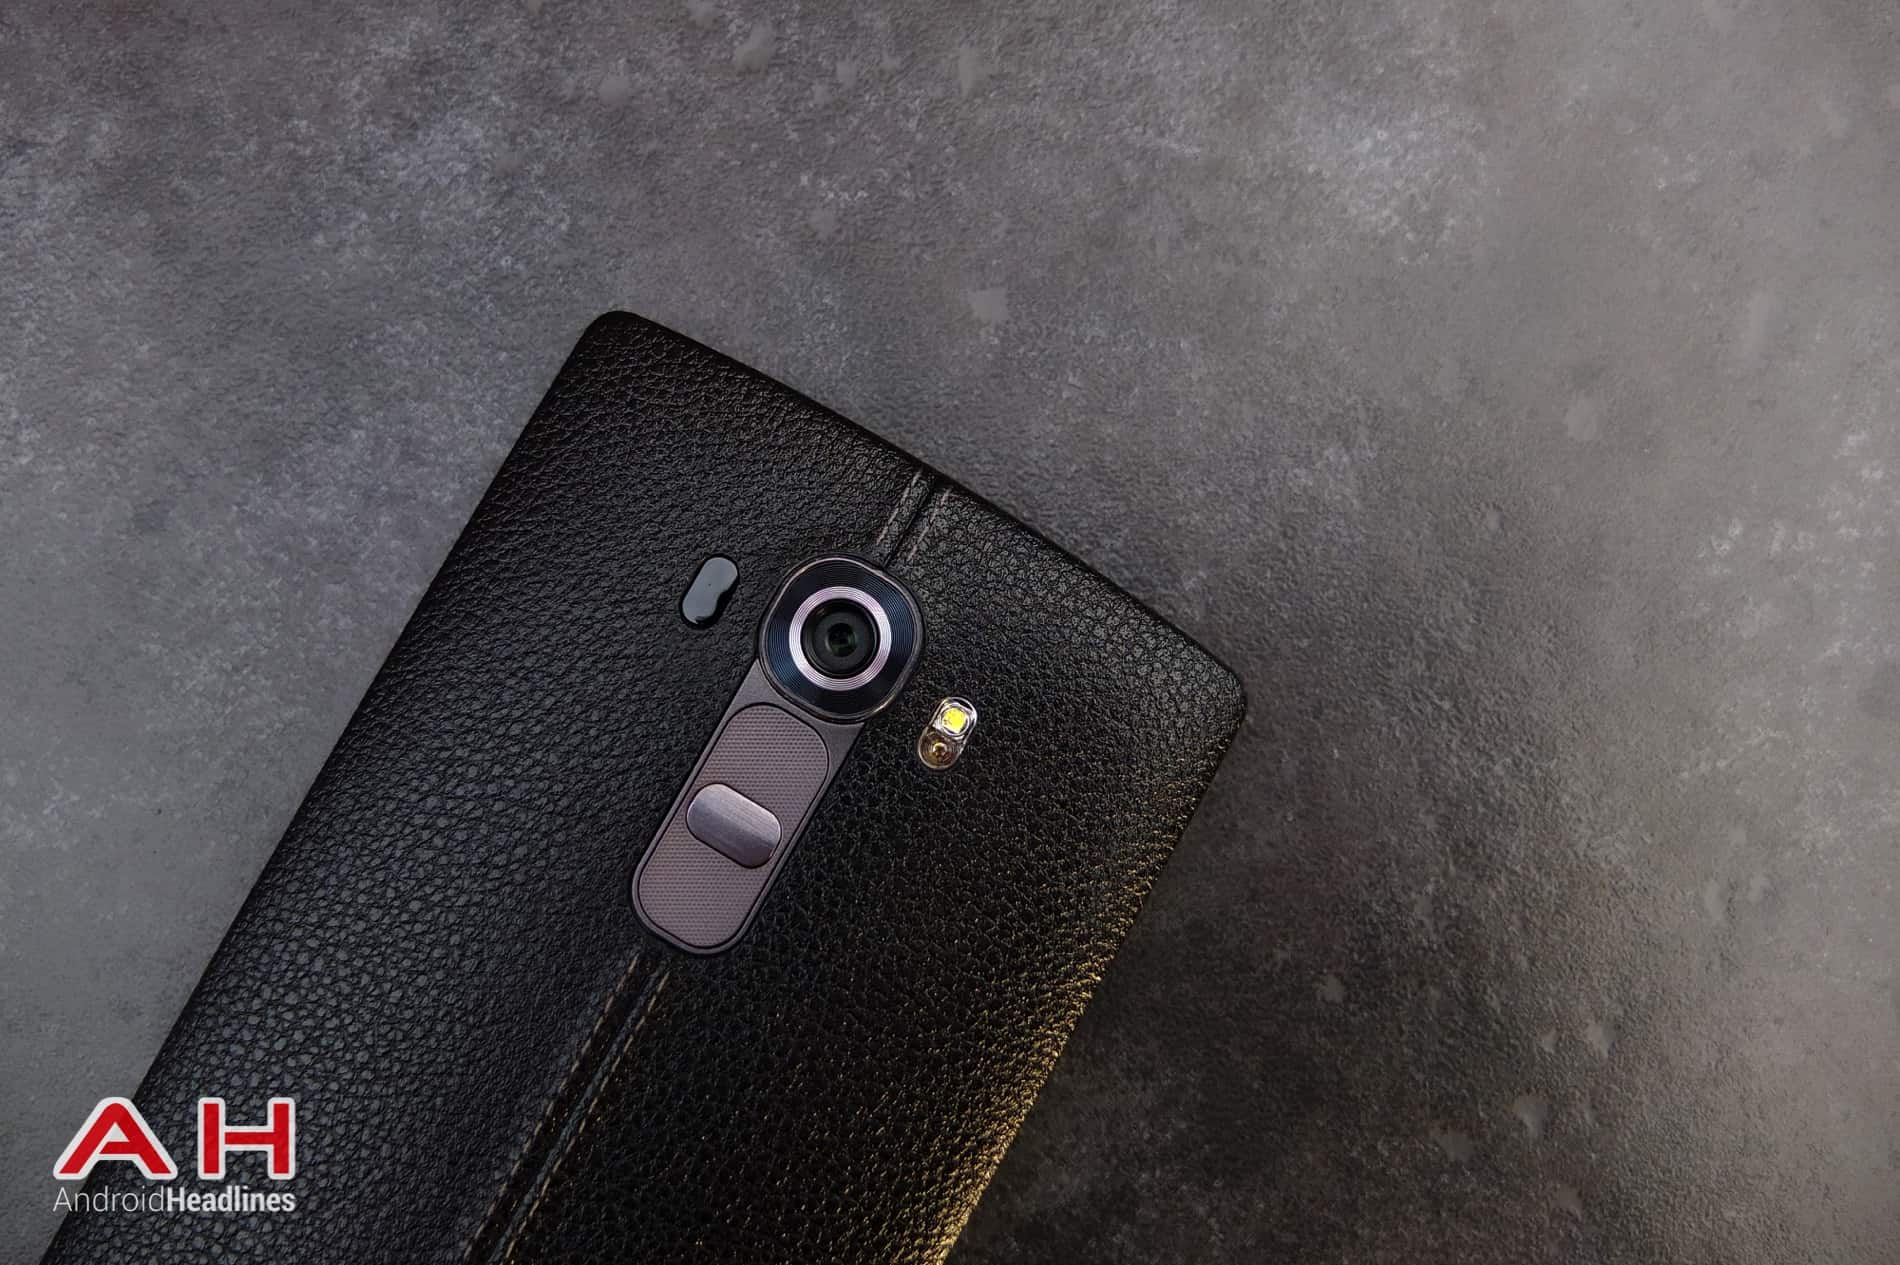 LG G4 BlackLeather TD AH 06